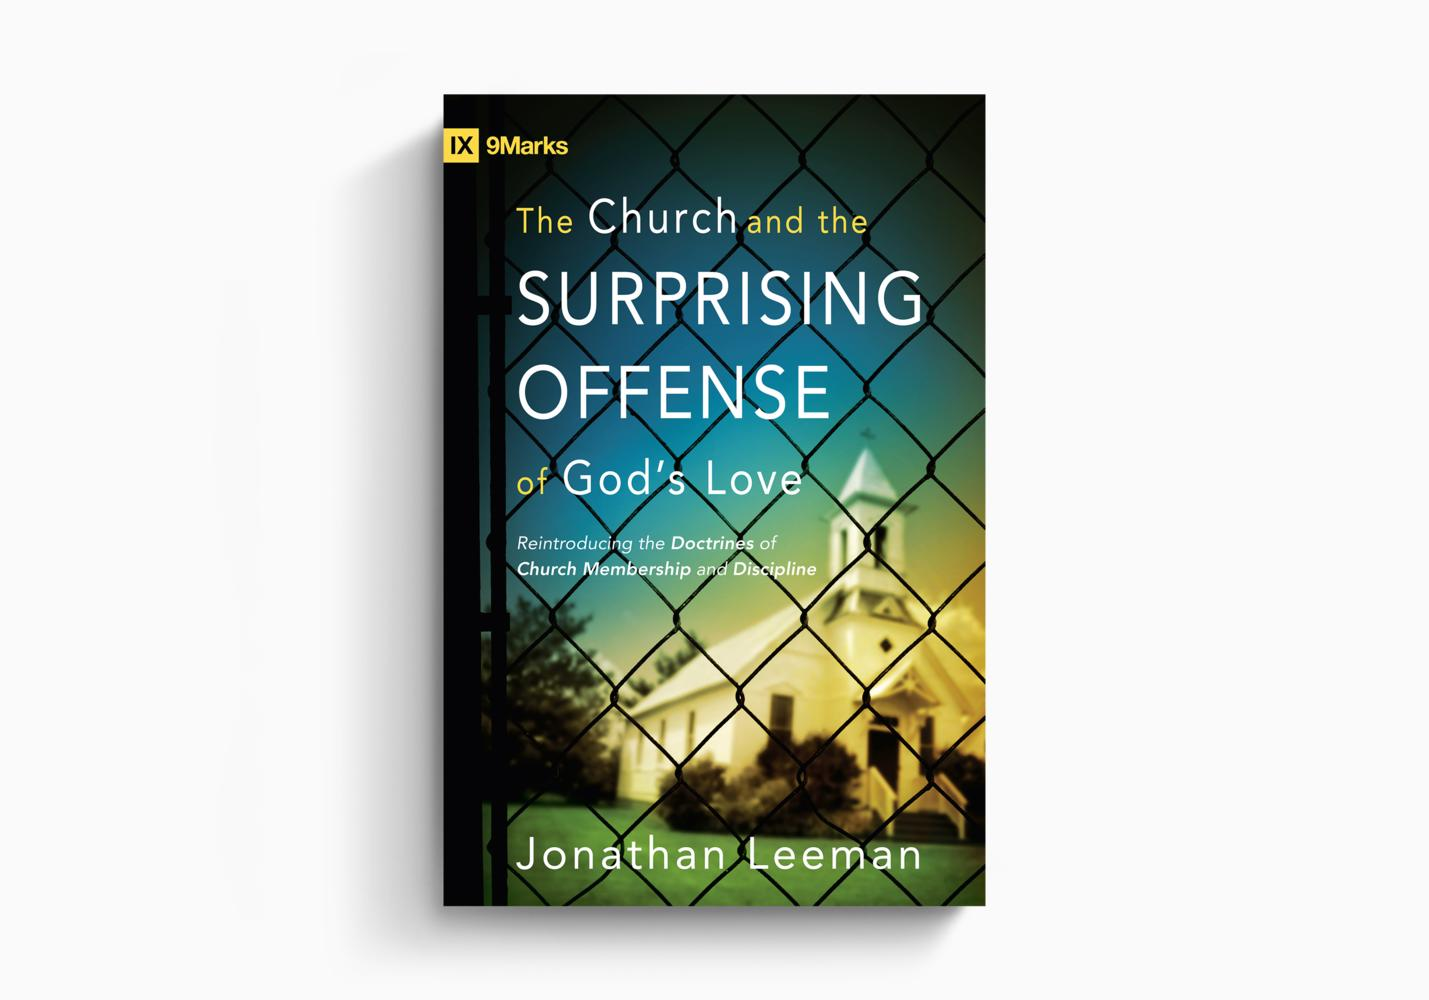 The Church and the Surprising Offense of God's Love